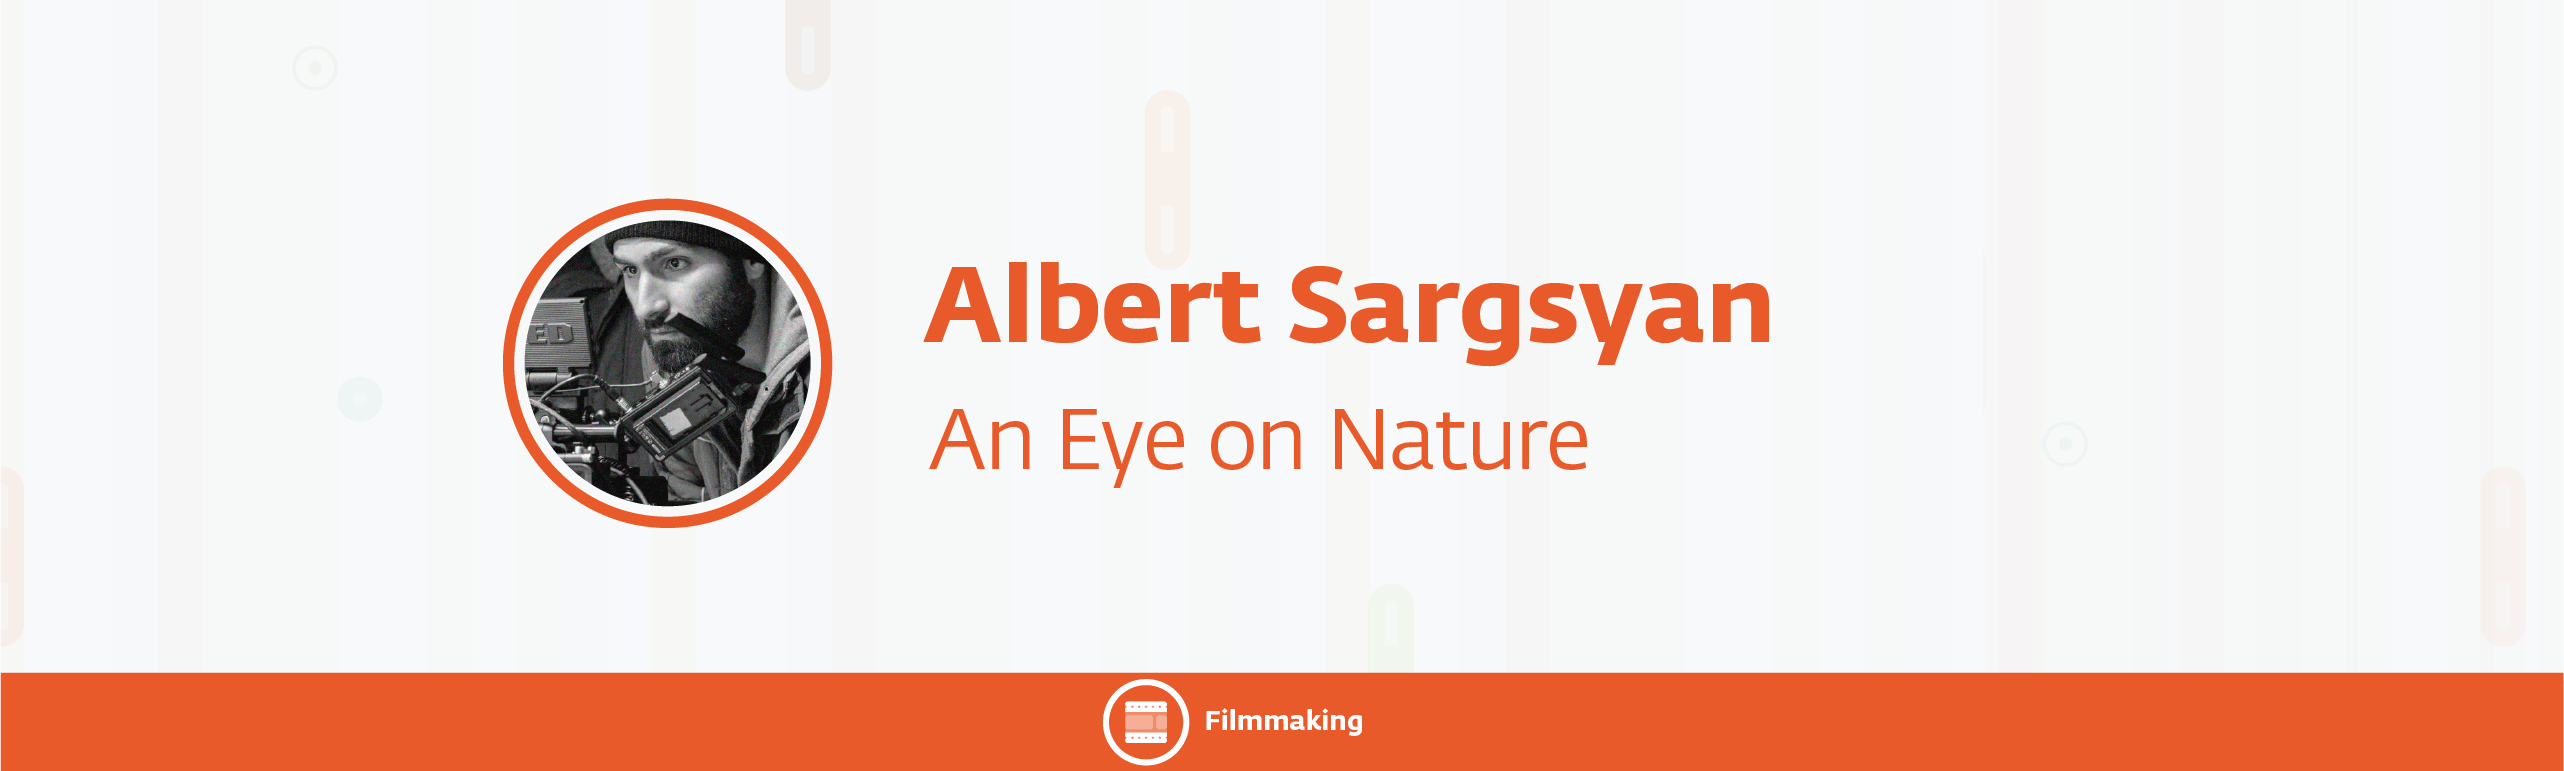 19 - An Eye on Nature